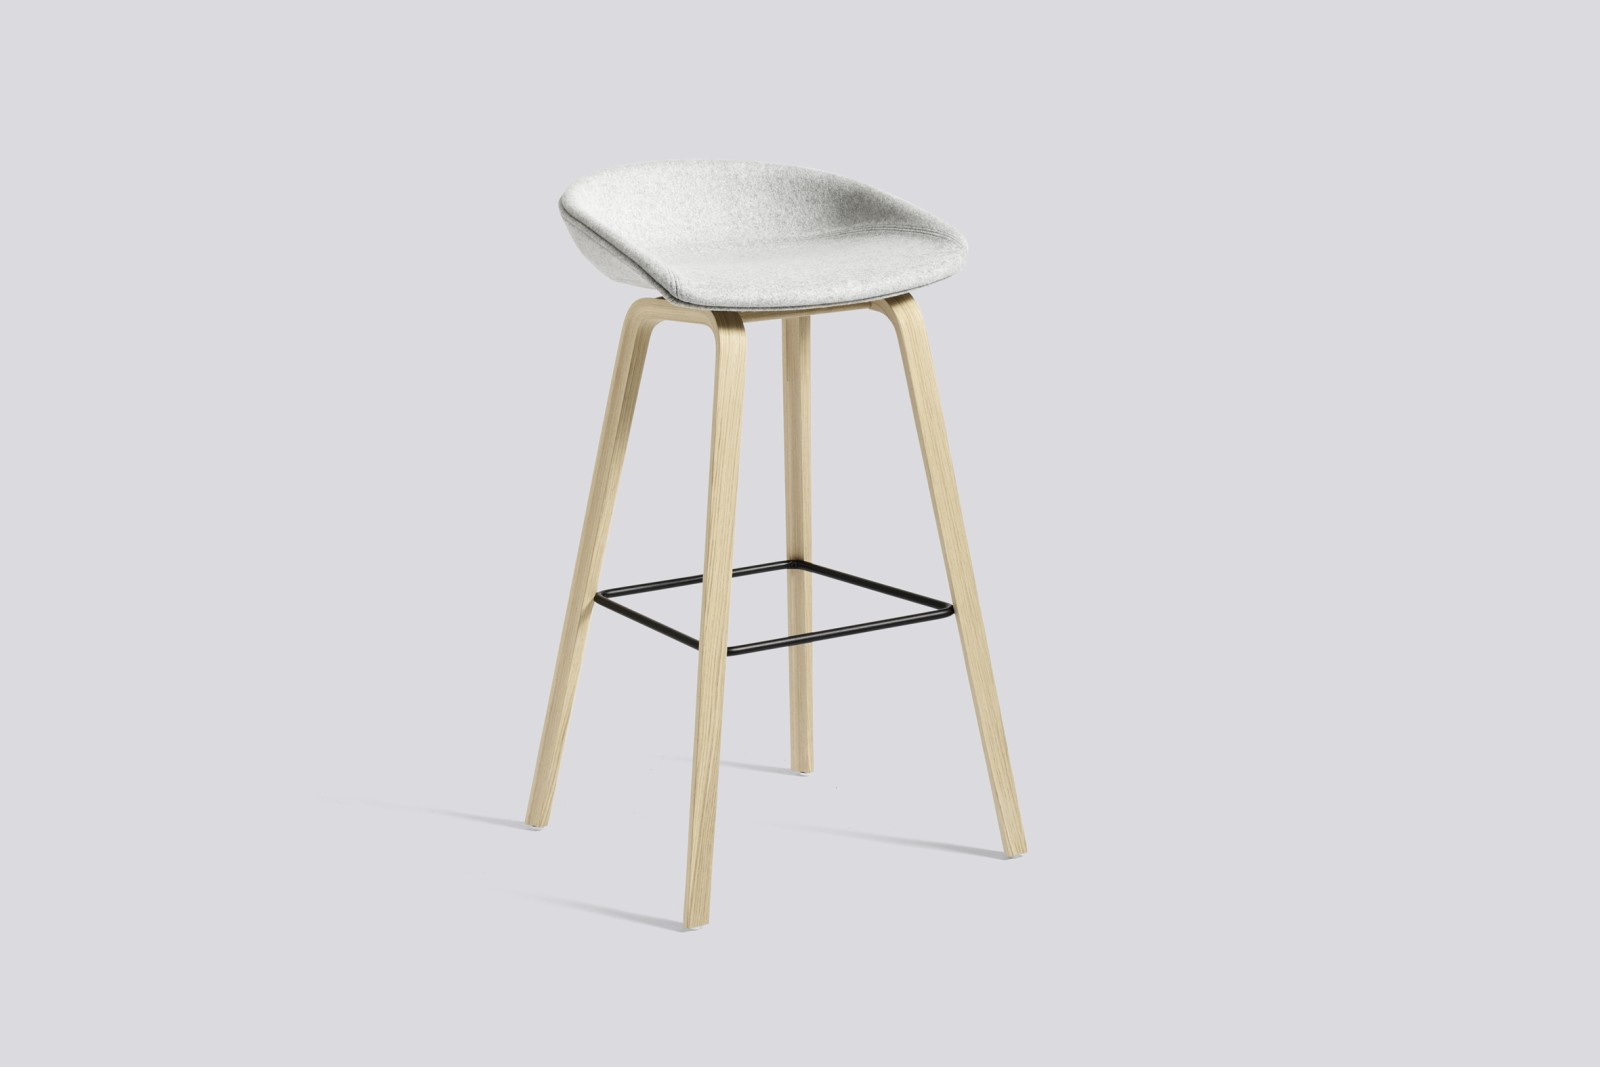 About A Stool AAS33 High Stool, Matt Lacquered Oak Legs Divina 3 106